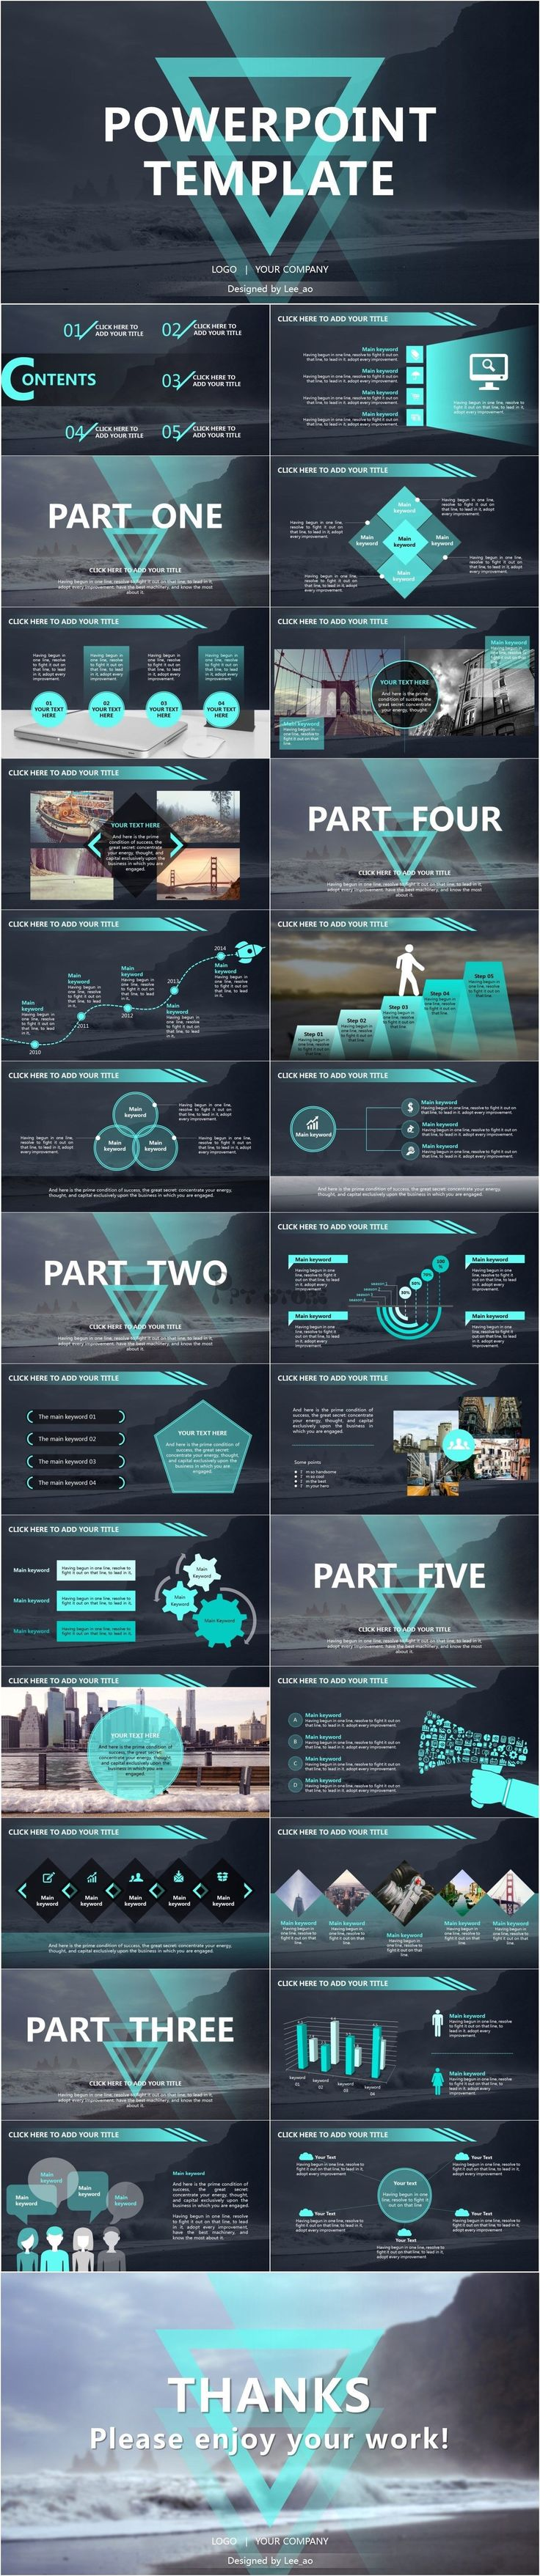 best 25+ modern powerpoint design ideas on pinterest | power point, Powerpoint templates